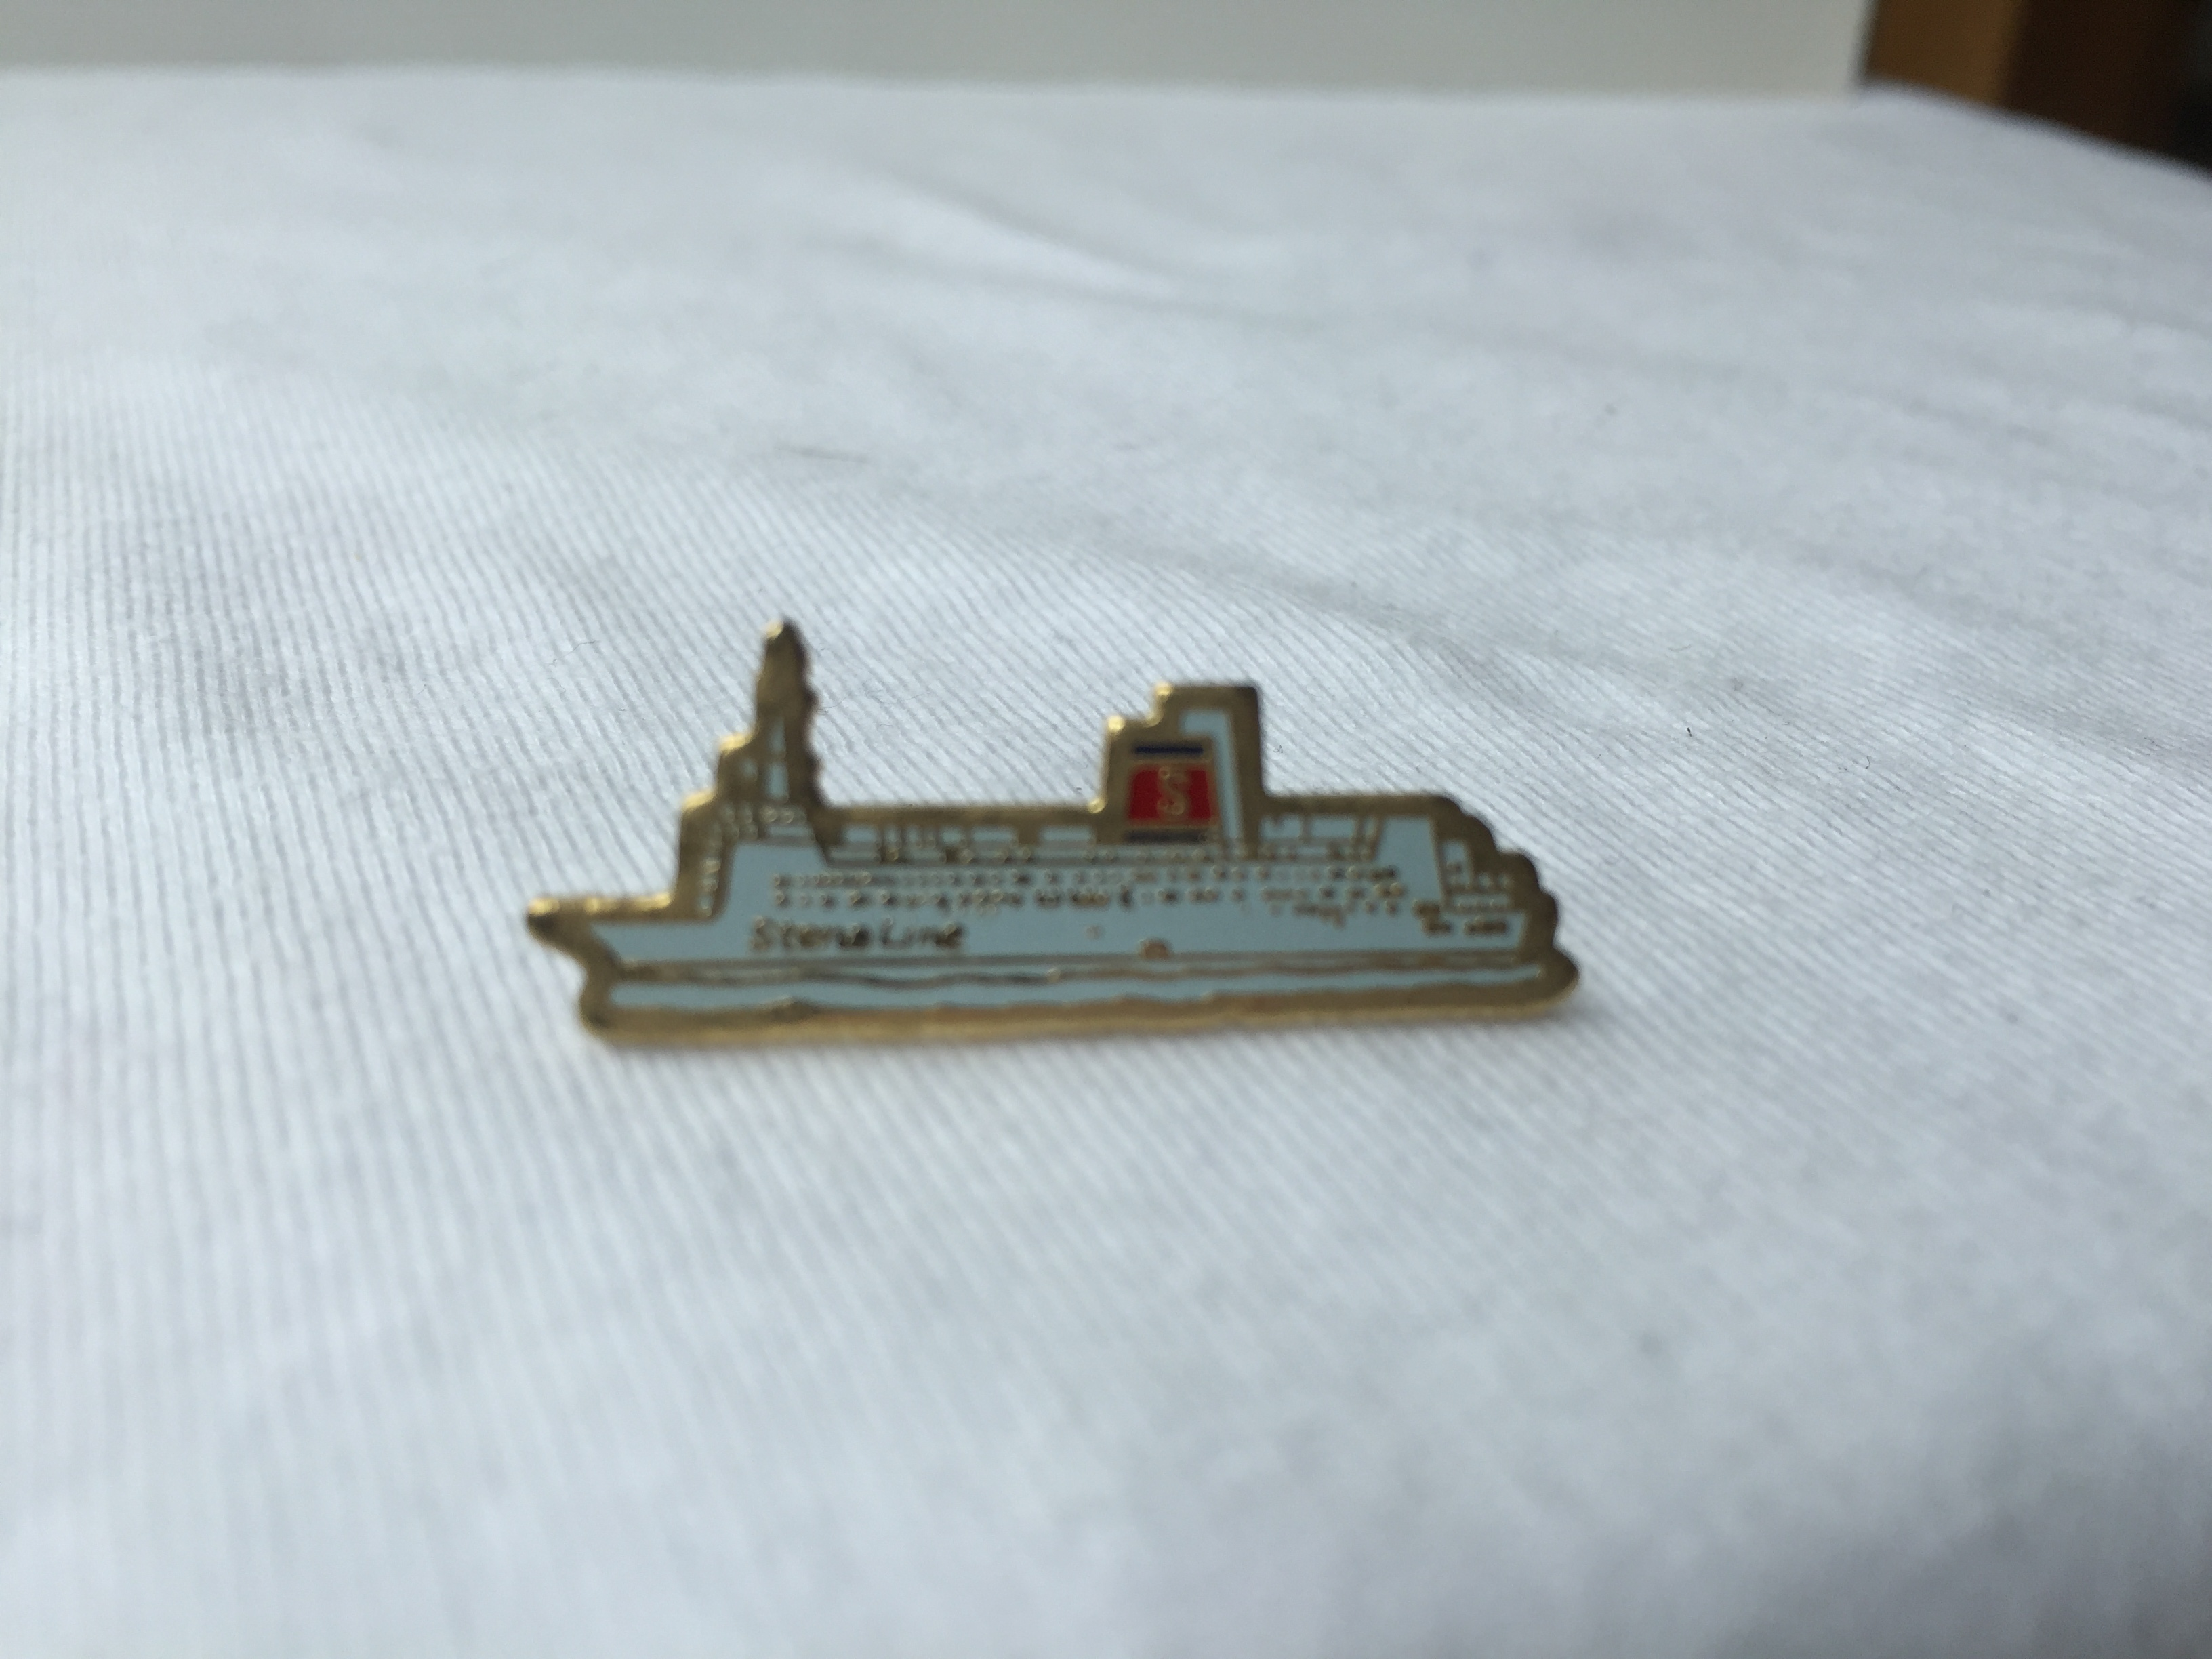 SHIP SHAPE LAPEL PIN FROM THE STENA LINE FERRY CROSSING COMPANY